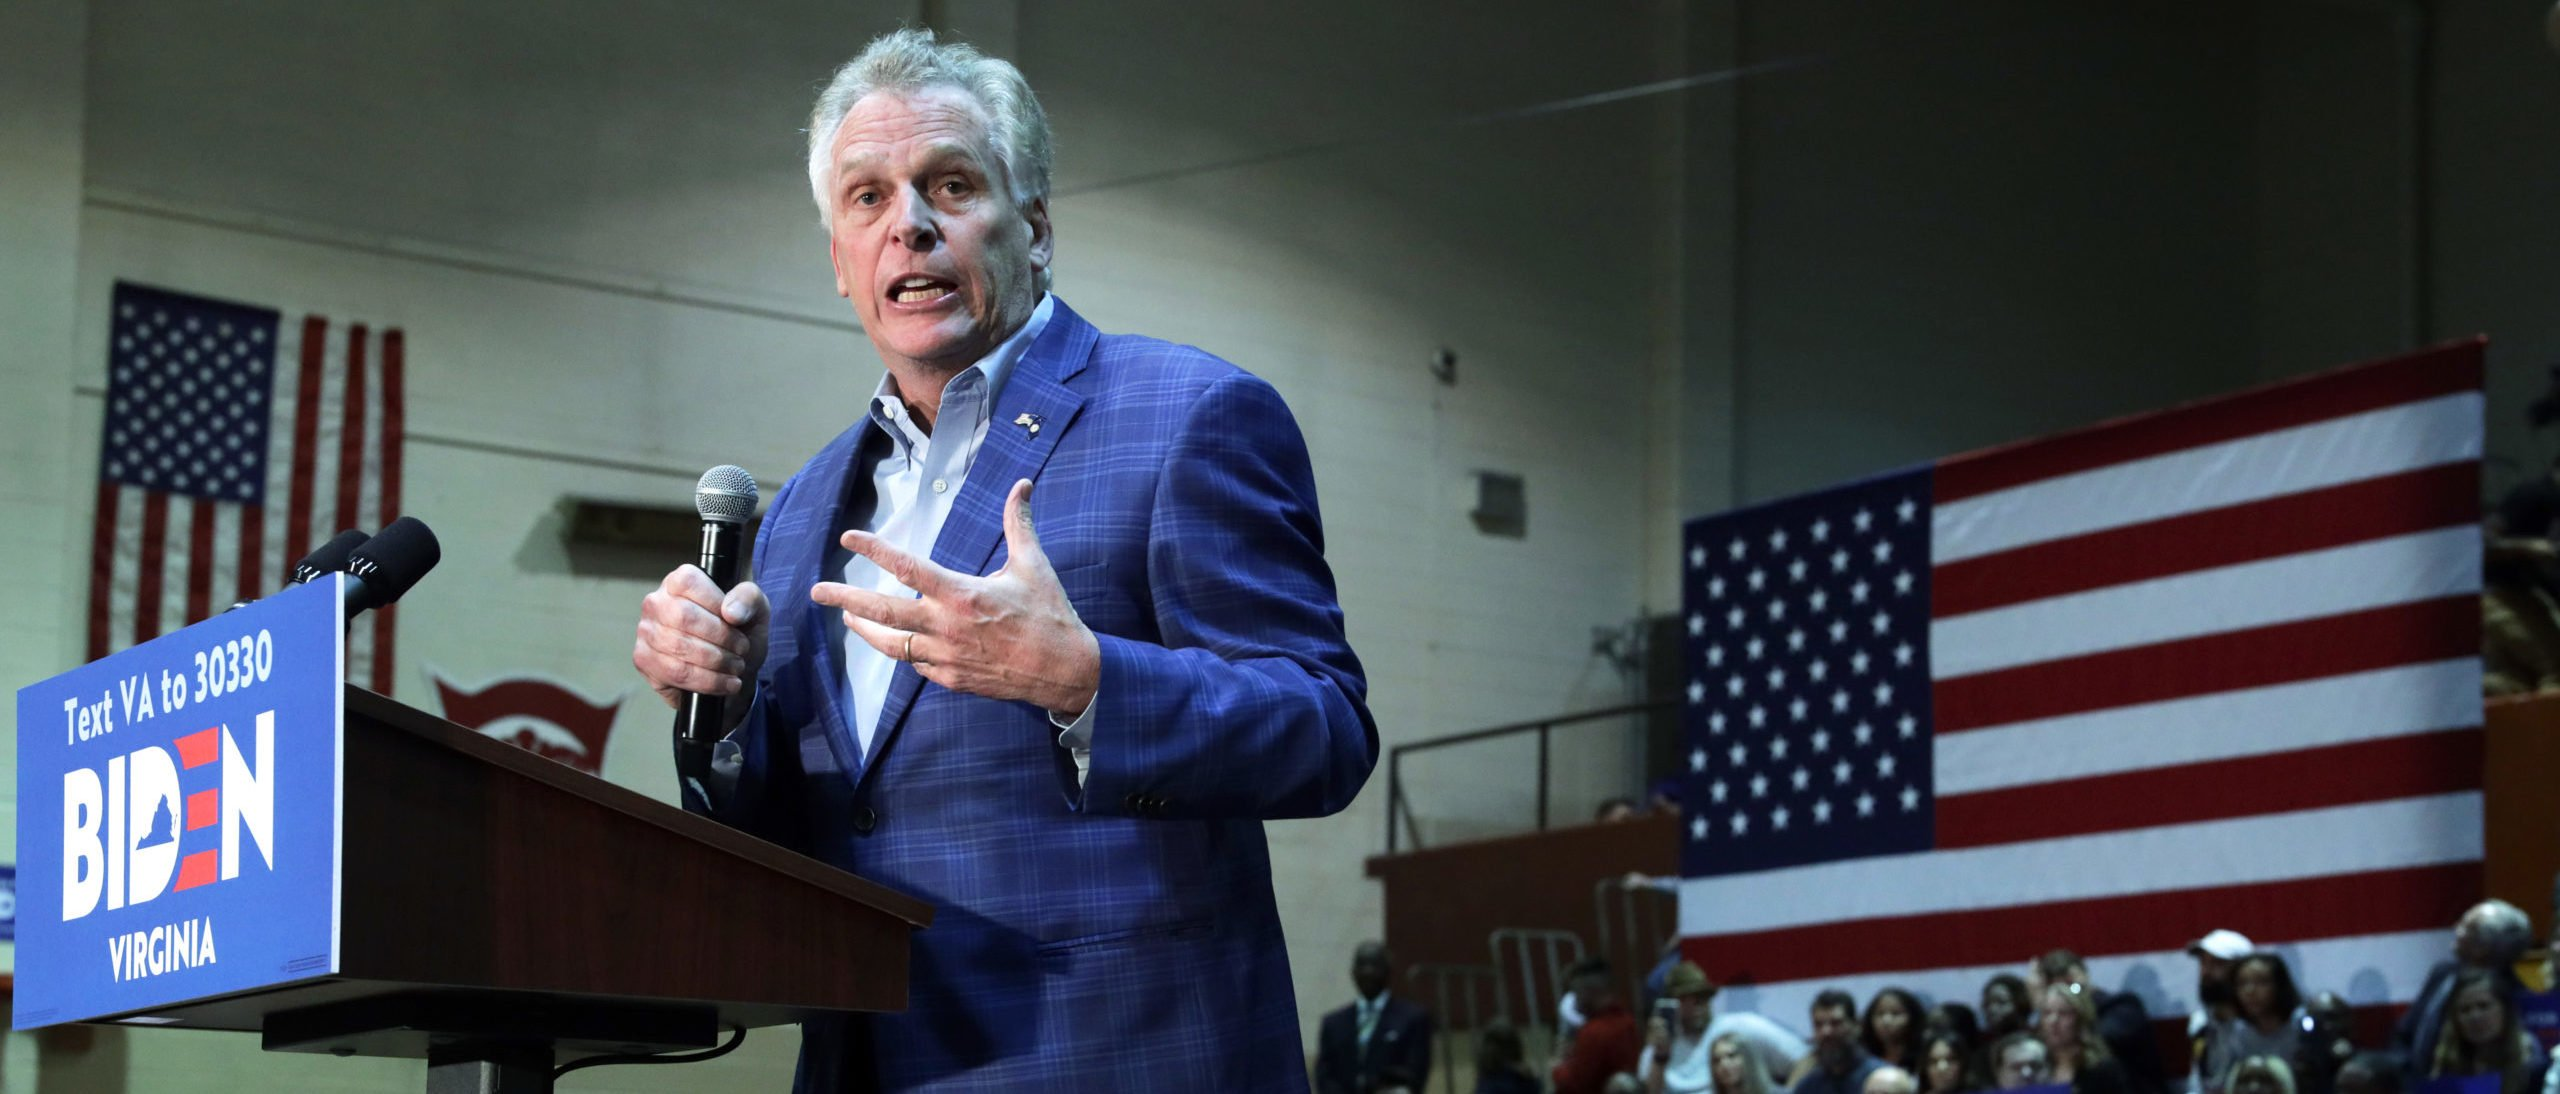 Former Virginia Governor Terry McAuliffe speaks during a campaign event of Democratic presidential candidate former Vice President Joe Biden at Booker T. Washington High School March 1, 2020 in Norfolk, Virginia. (Photo by Alex Wong/Getty Images)